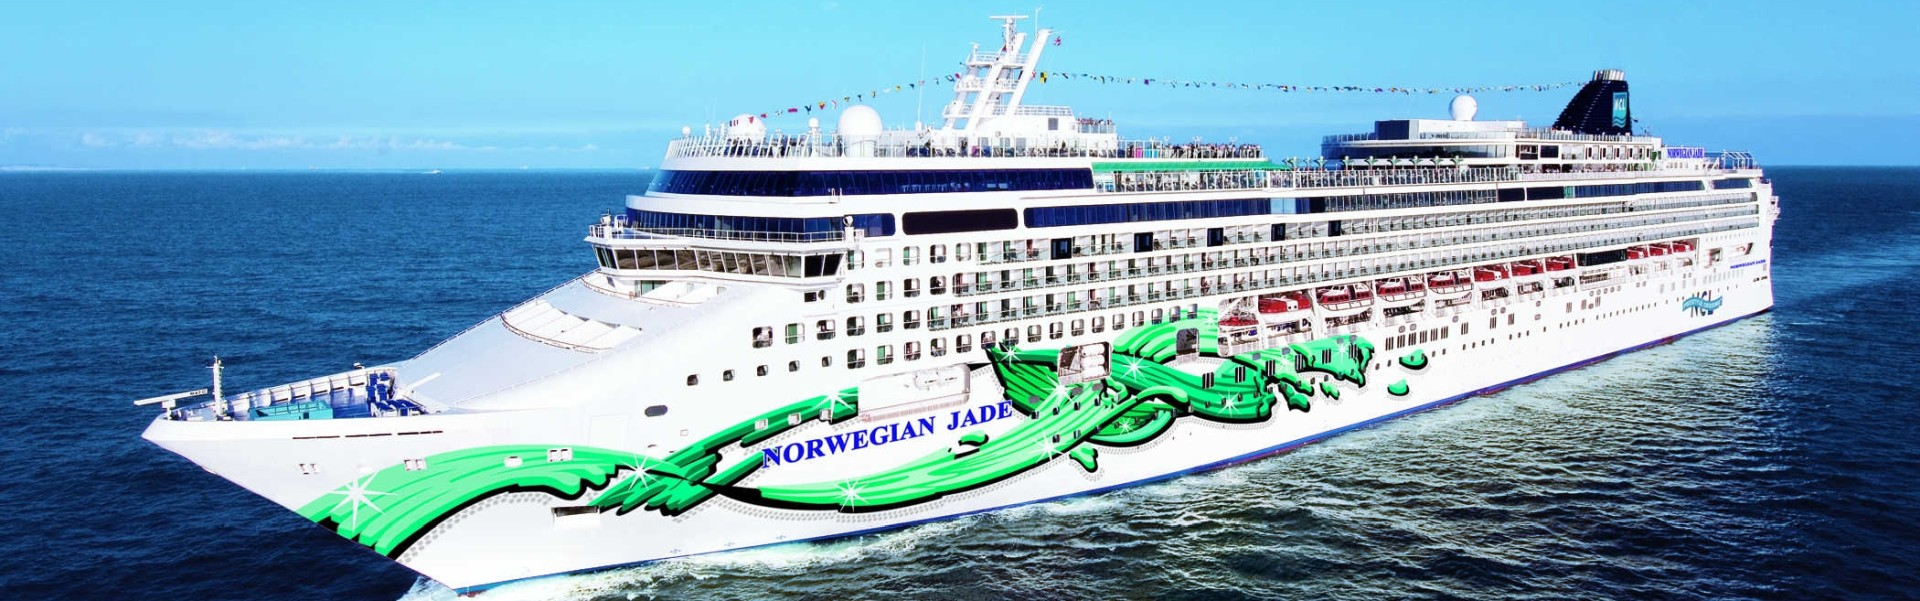 Norwegian Jade © Norwegian Cruise Line